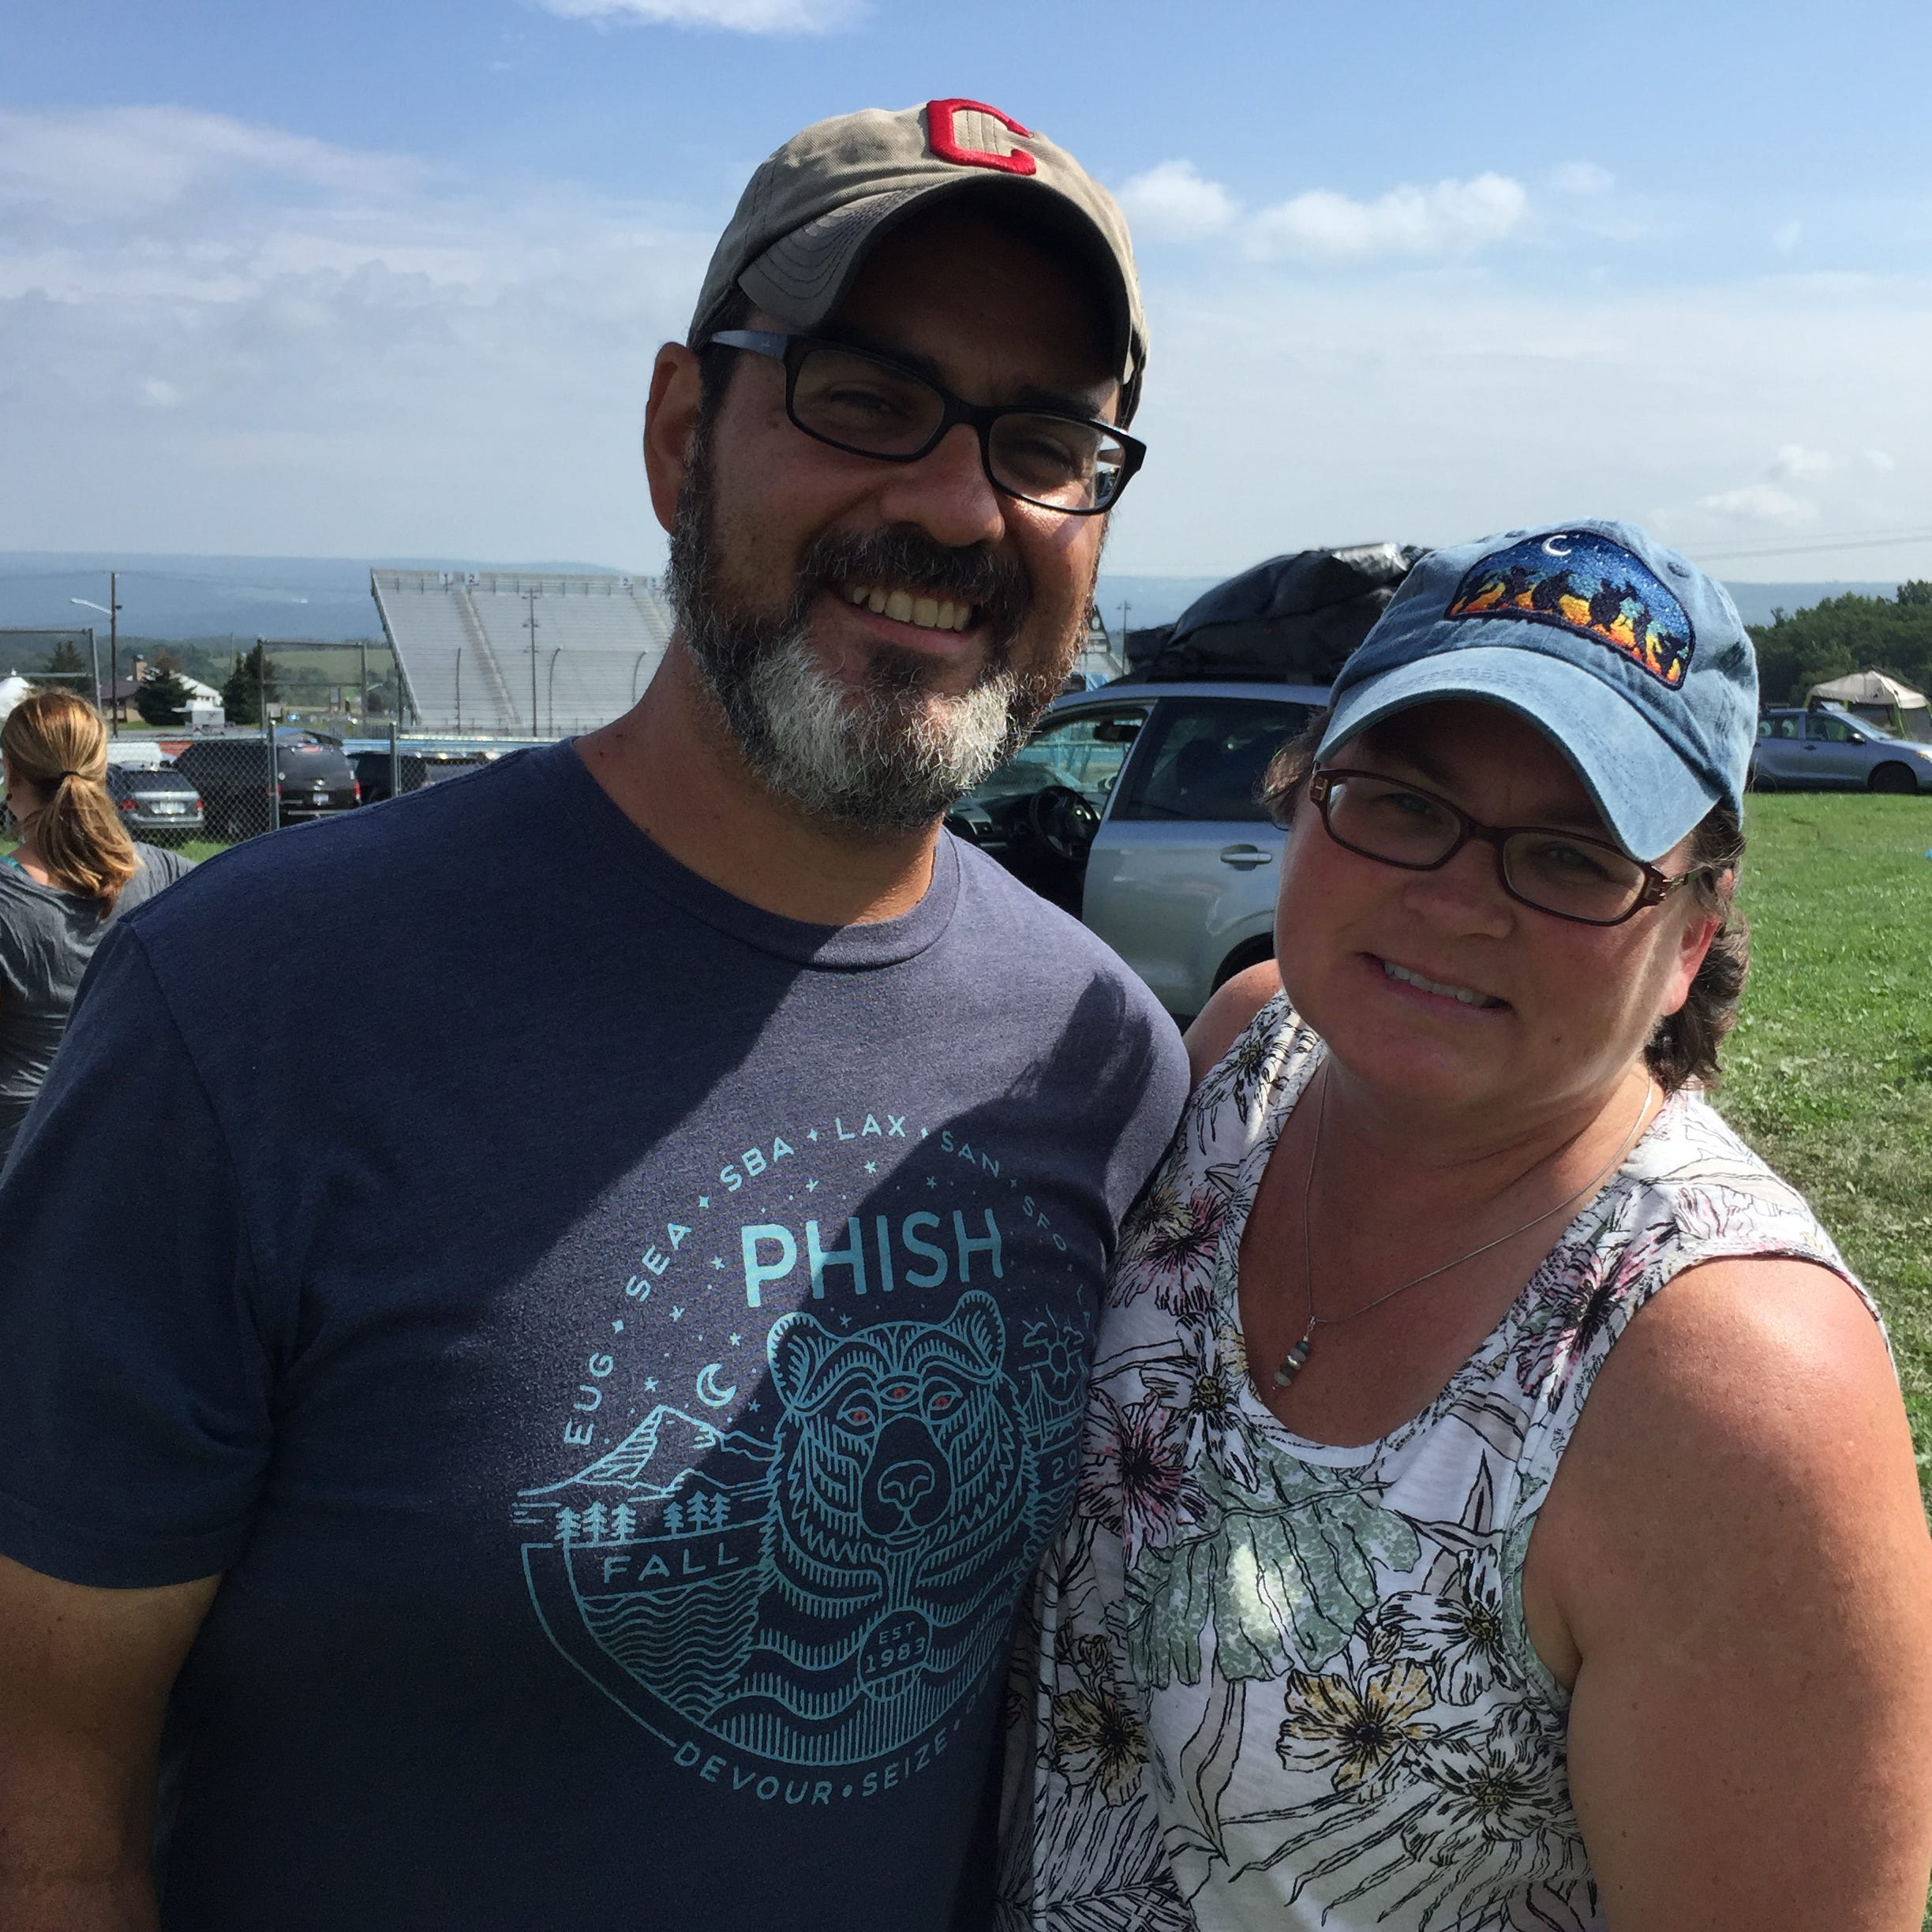 Curveball canceled. Phish fans ask: Now what?